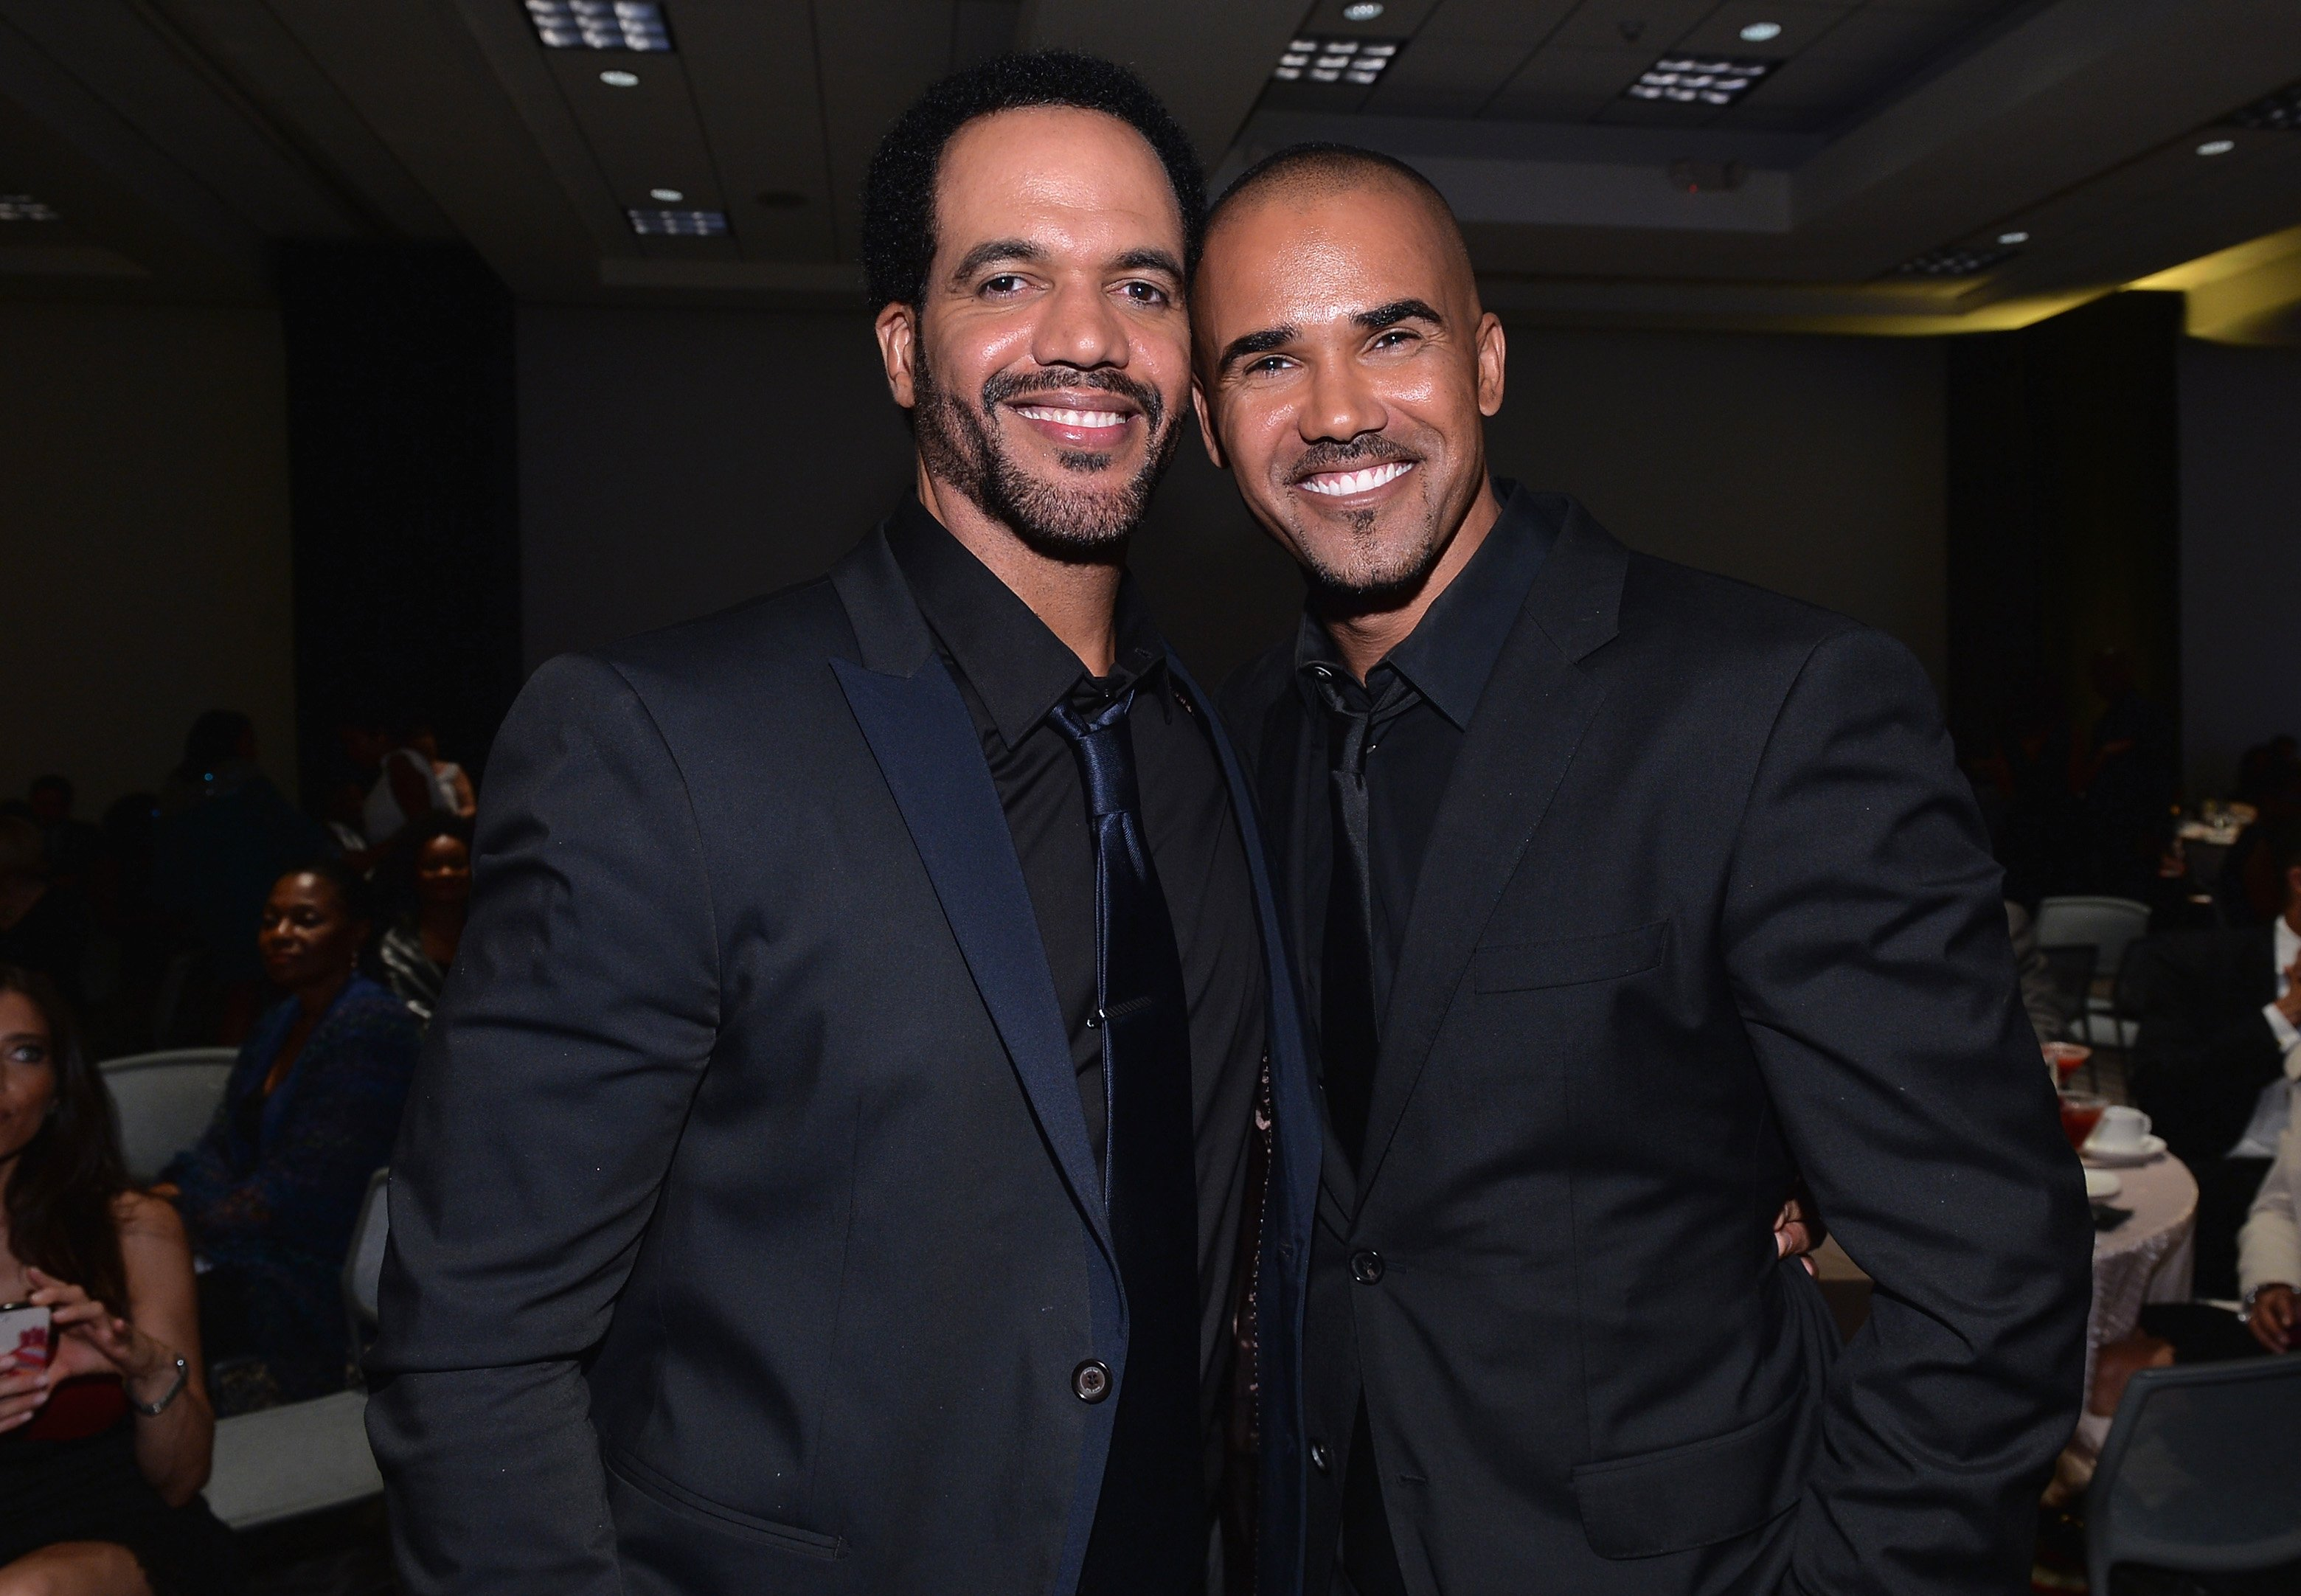 Shemar Moore and the late Kristoff St. John   Photo: Getty Images